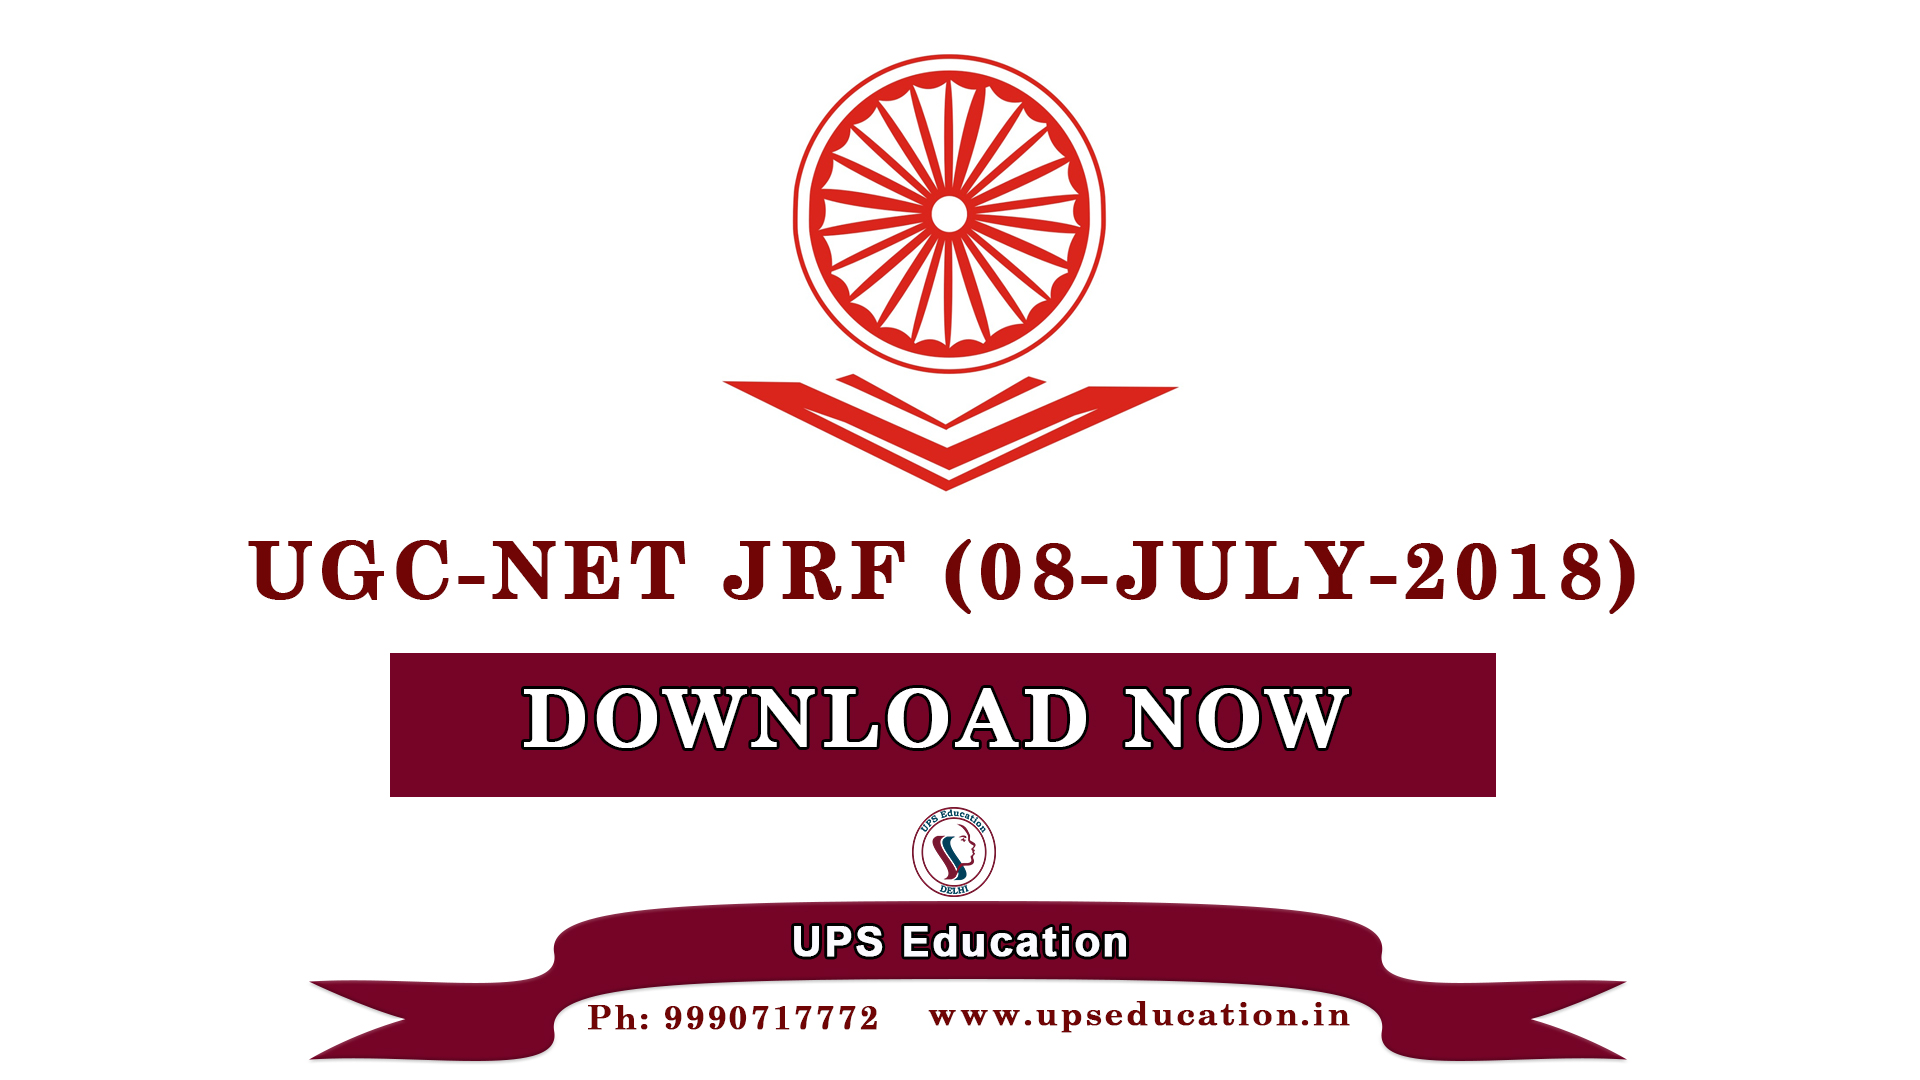 Csir ugc net physical science solved question paper 1 2012 pdf.